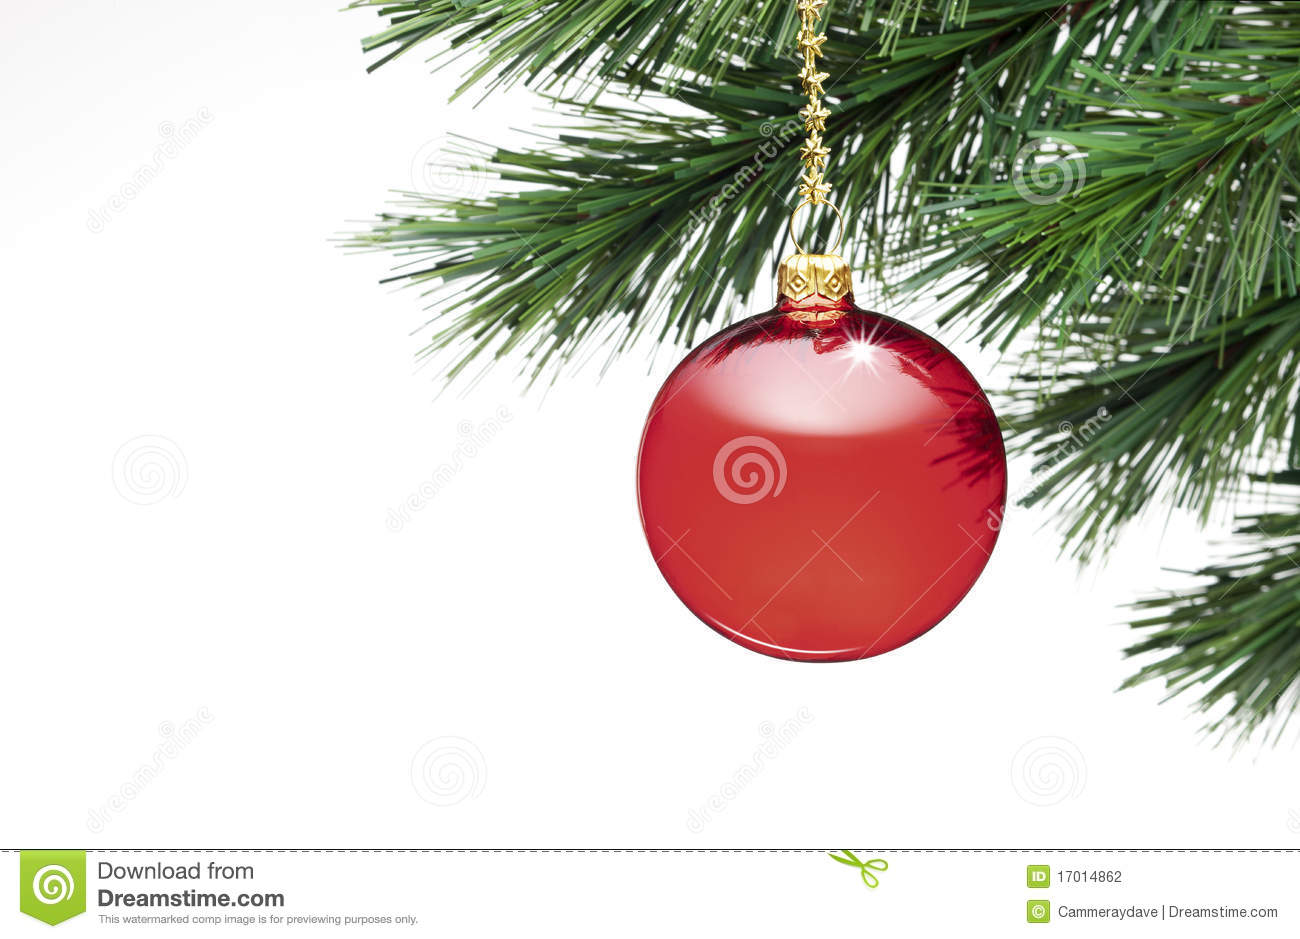 royalty free stock photo download christmas tree ornament - Christmas Tree Ornament